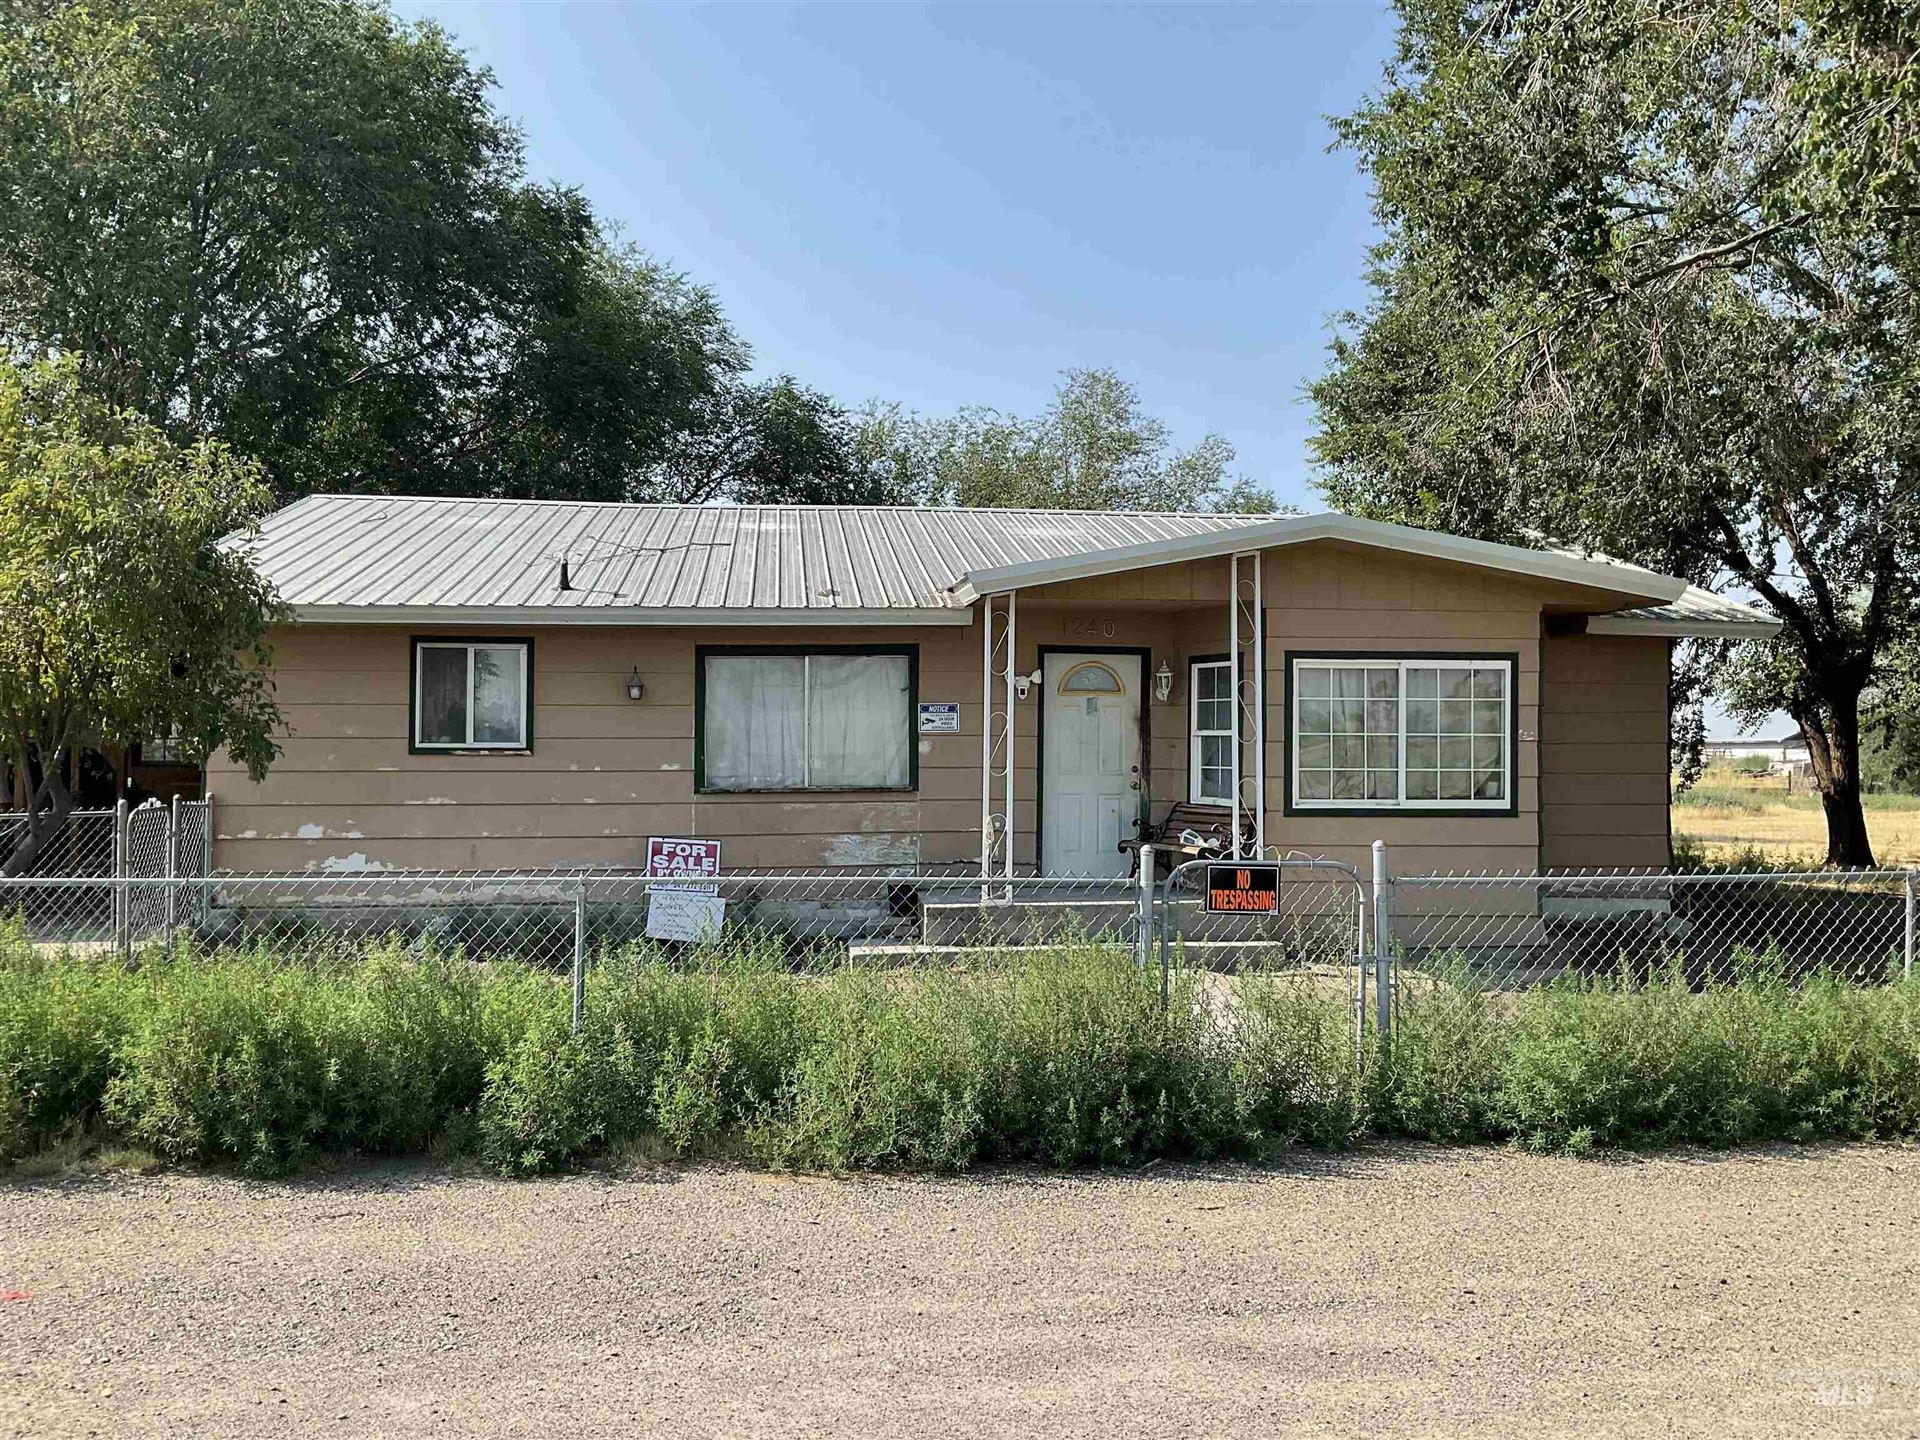 1240 NW 22nd, Ontario, OR 97914 - MLS#: 98818635